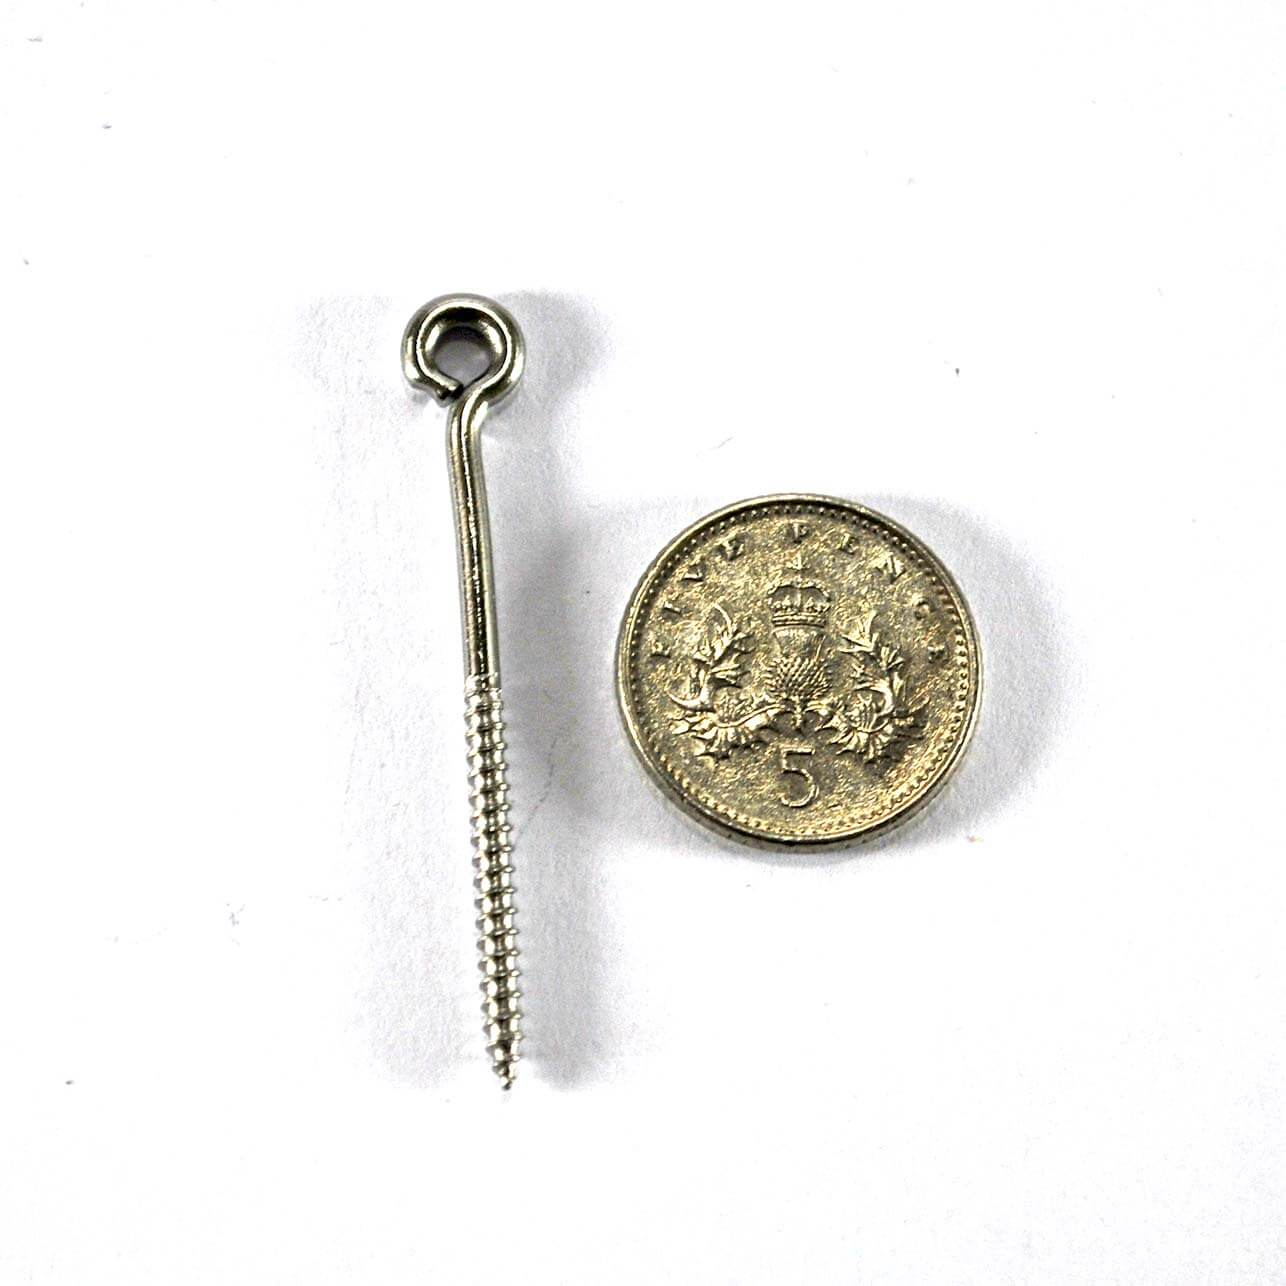 39mm Stainless steel screw eyes